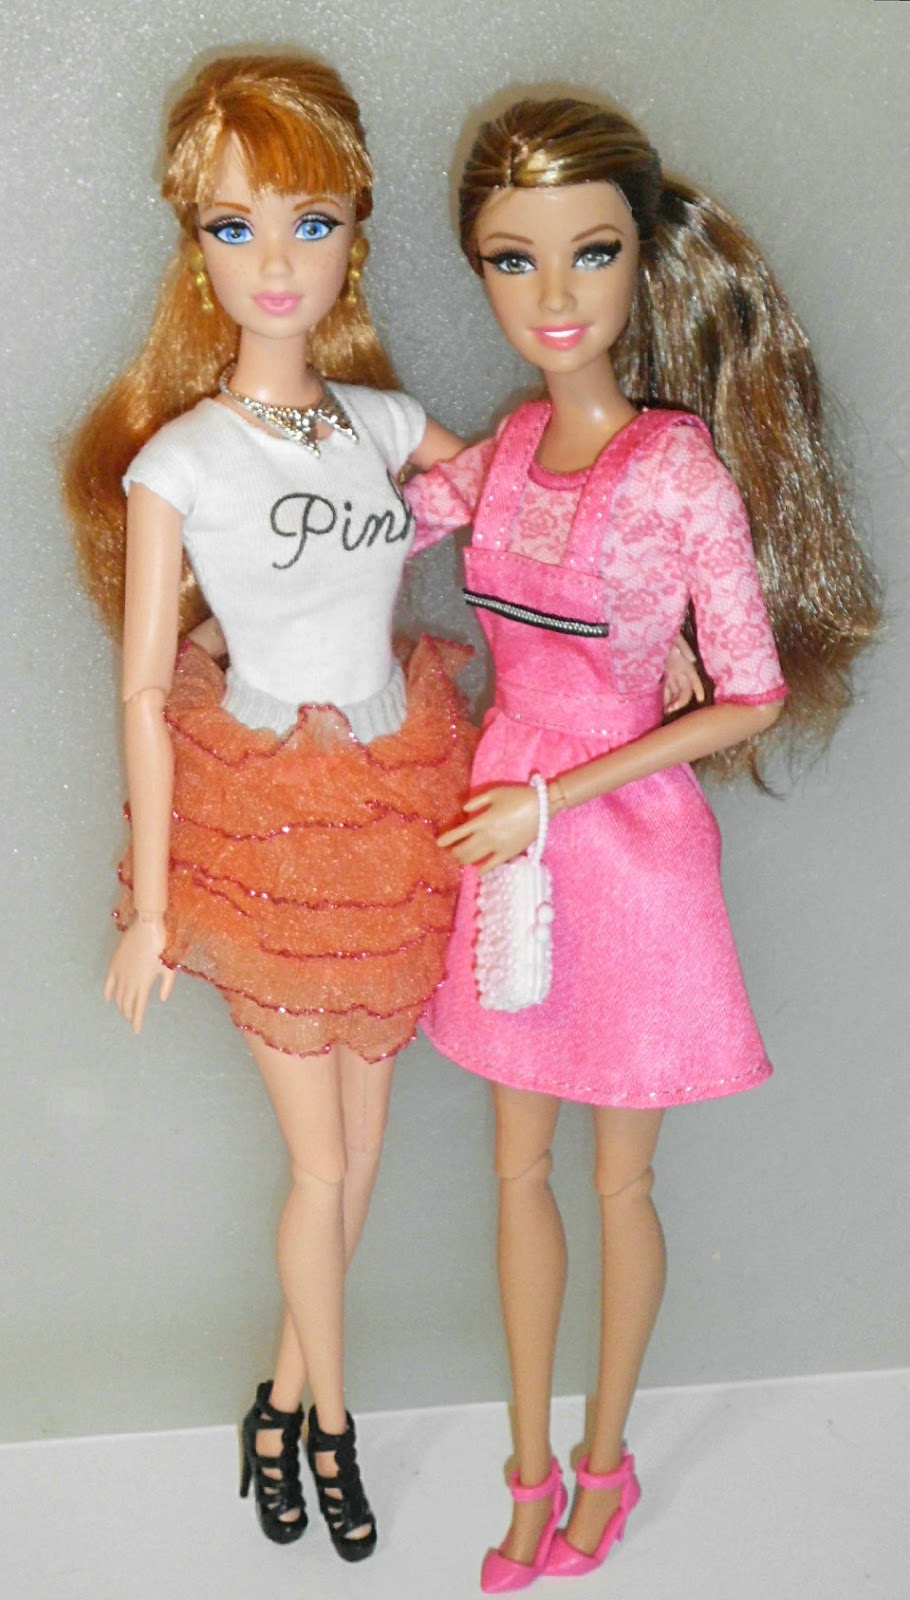 OUTFIT SET #1 Barbie Fashion Complete Look 2-Pack Birthday Set MODELS Life in the Dreamhouse Midge ( Midge ) on the left and Barbie Style Teresa ...  sc 1 st  Confessions of a Dolly Lover & Confessions of a Dolly Lover: Dolly Dress Discussion: new duds for ...